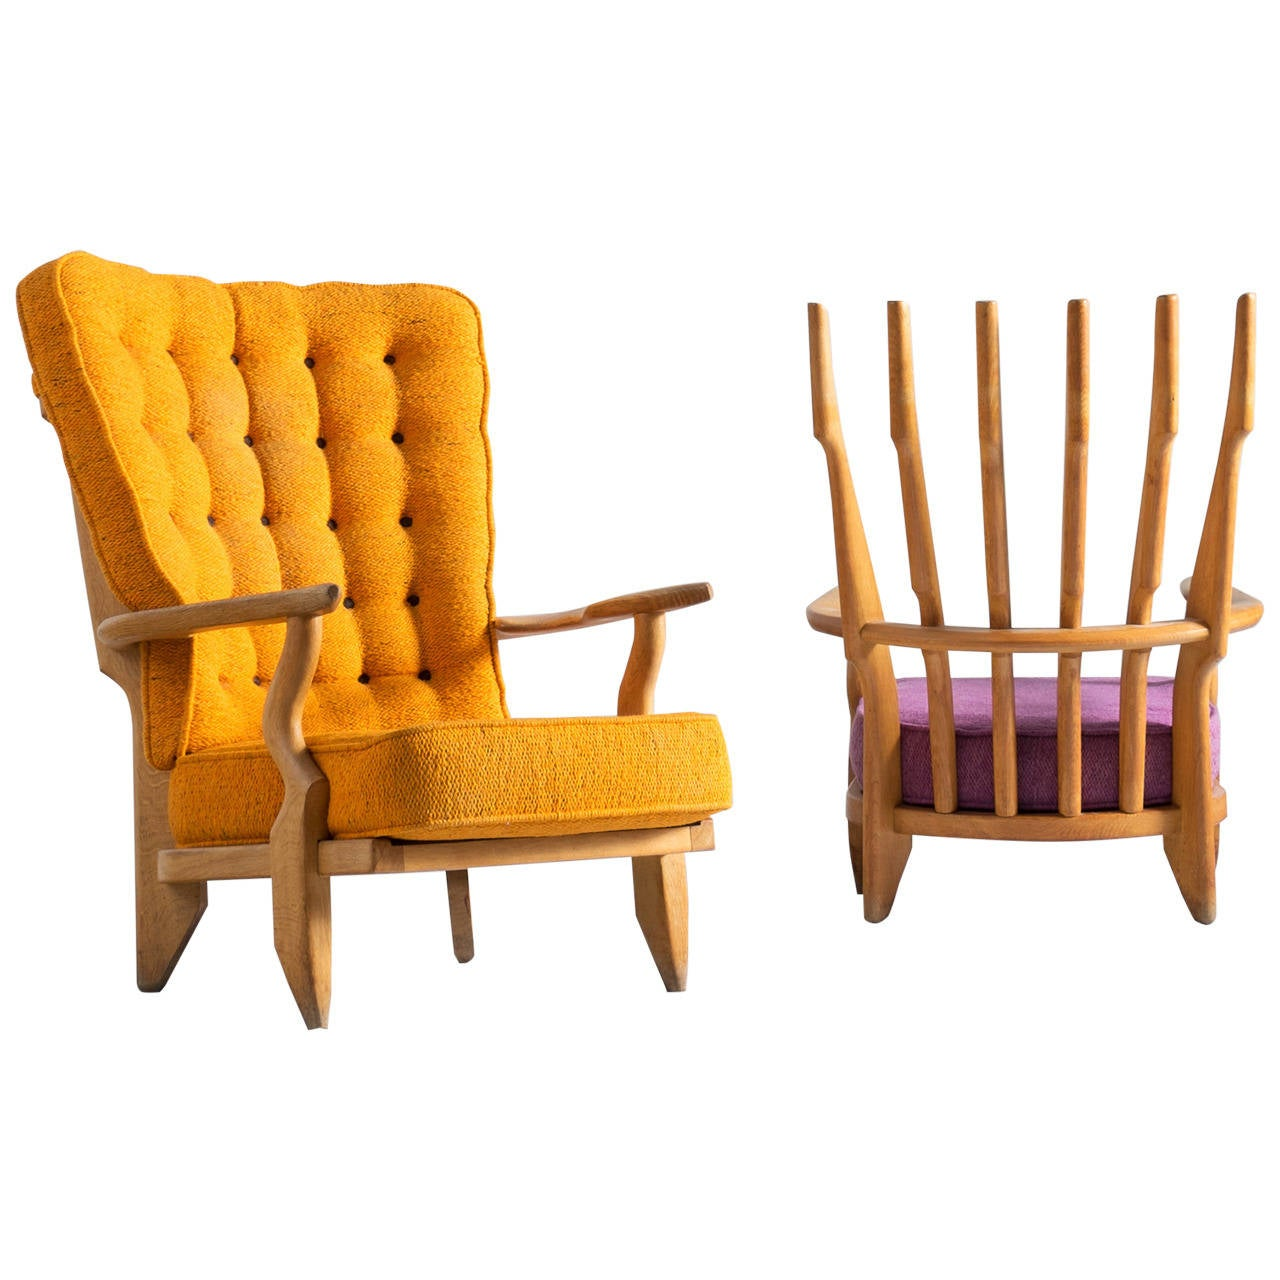 Two High Back Lounge Chairs by Guillerme and Chambron in Solid Oak For Sale